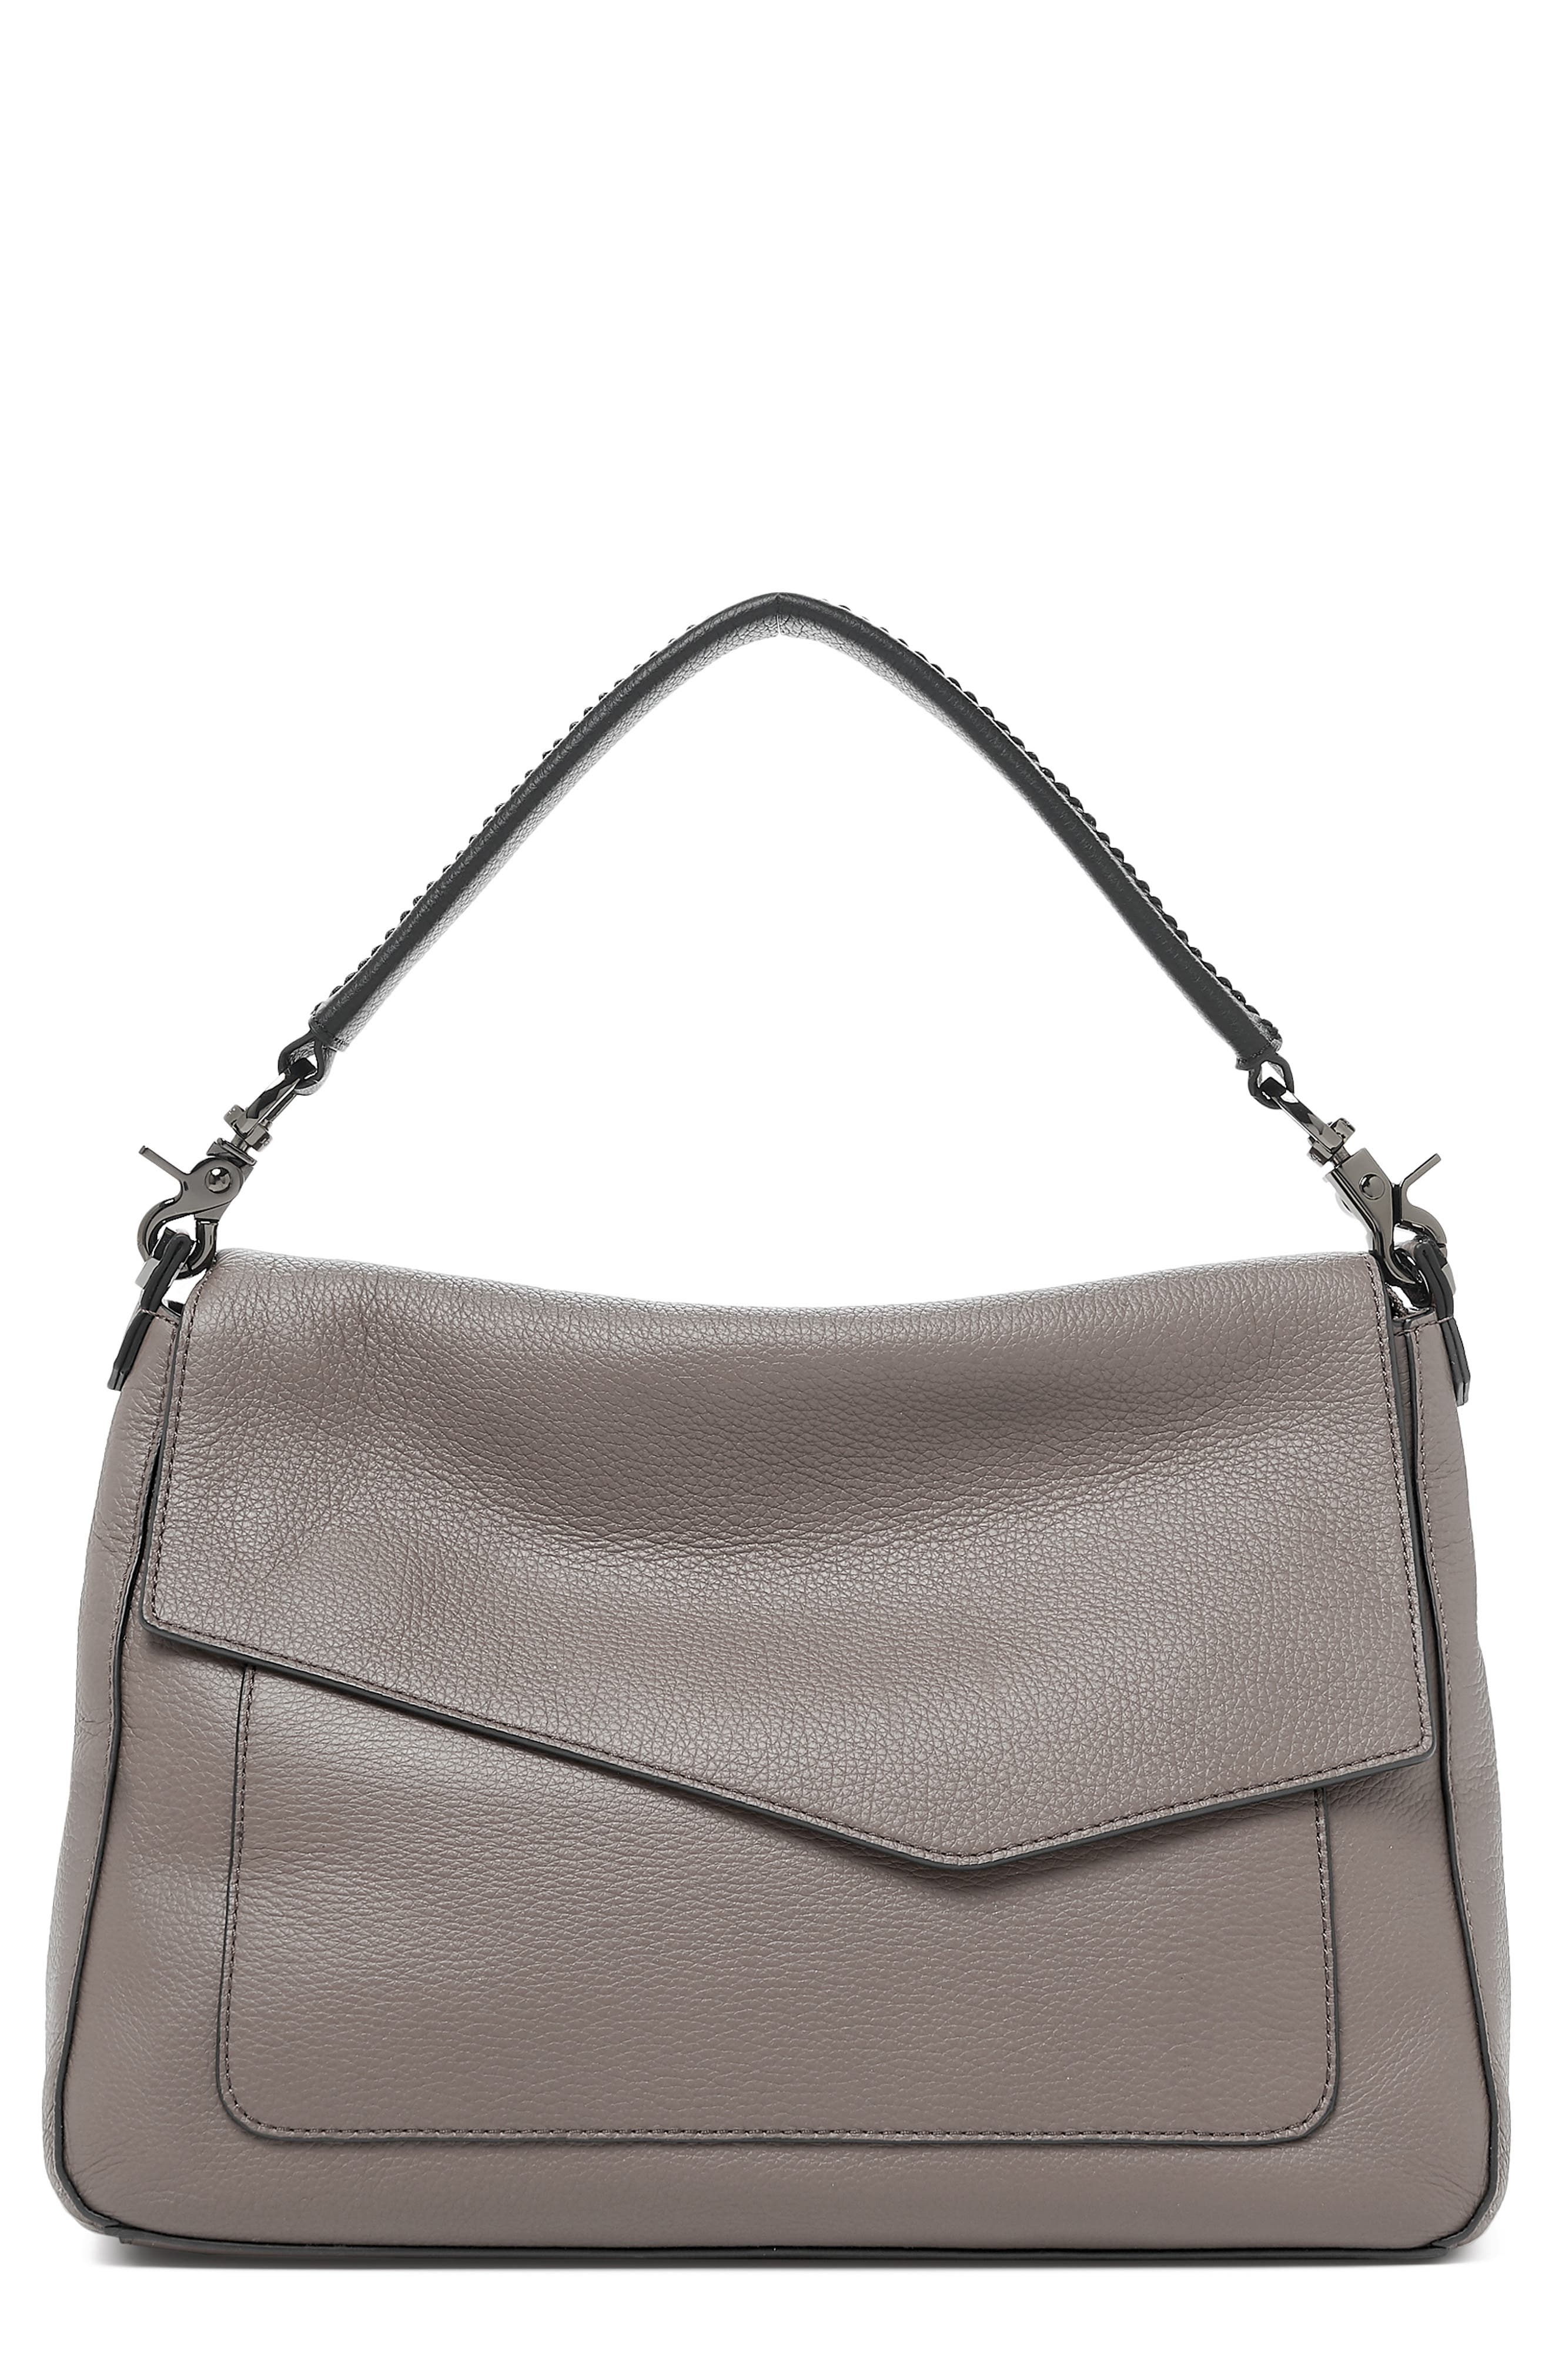 Cobble Hill Slouch Calfskin Leather Hobo,                             Main thumbnail 1, color,                             WINTER GREY